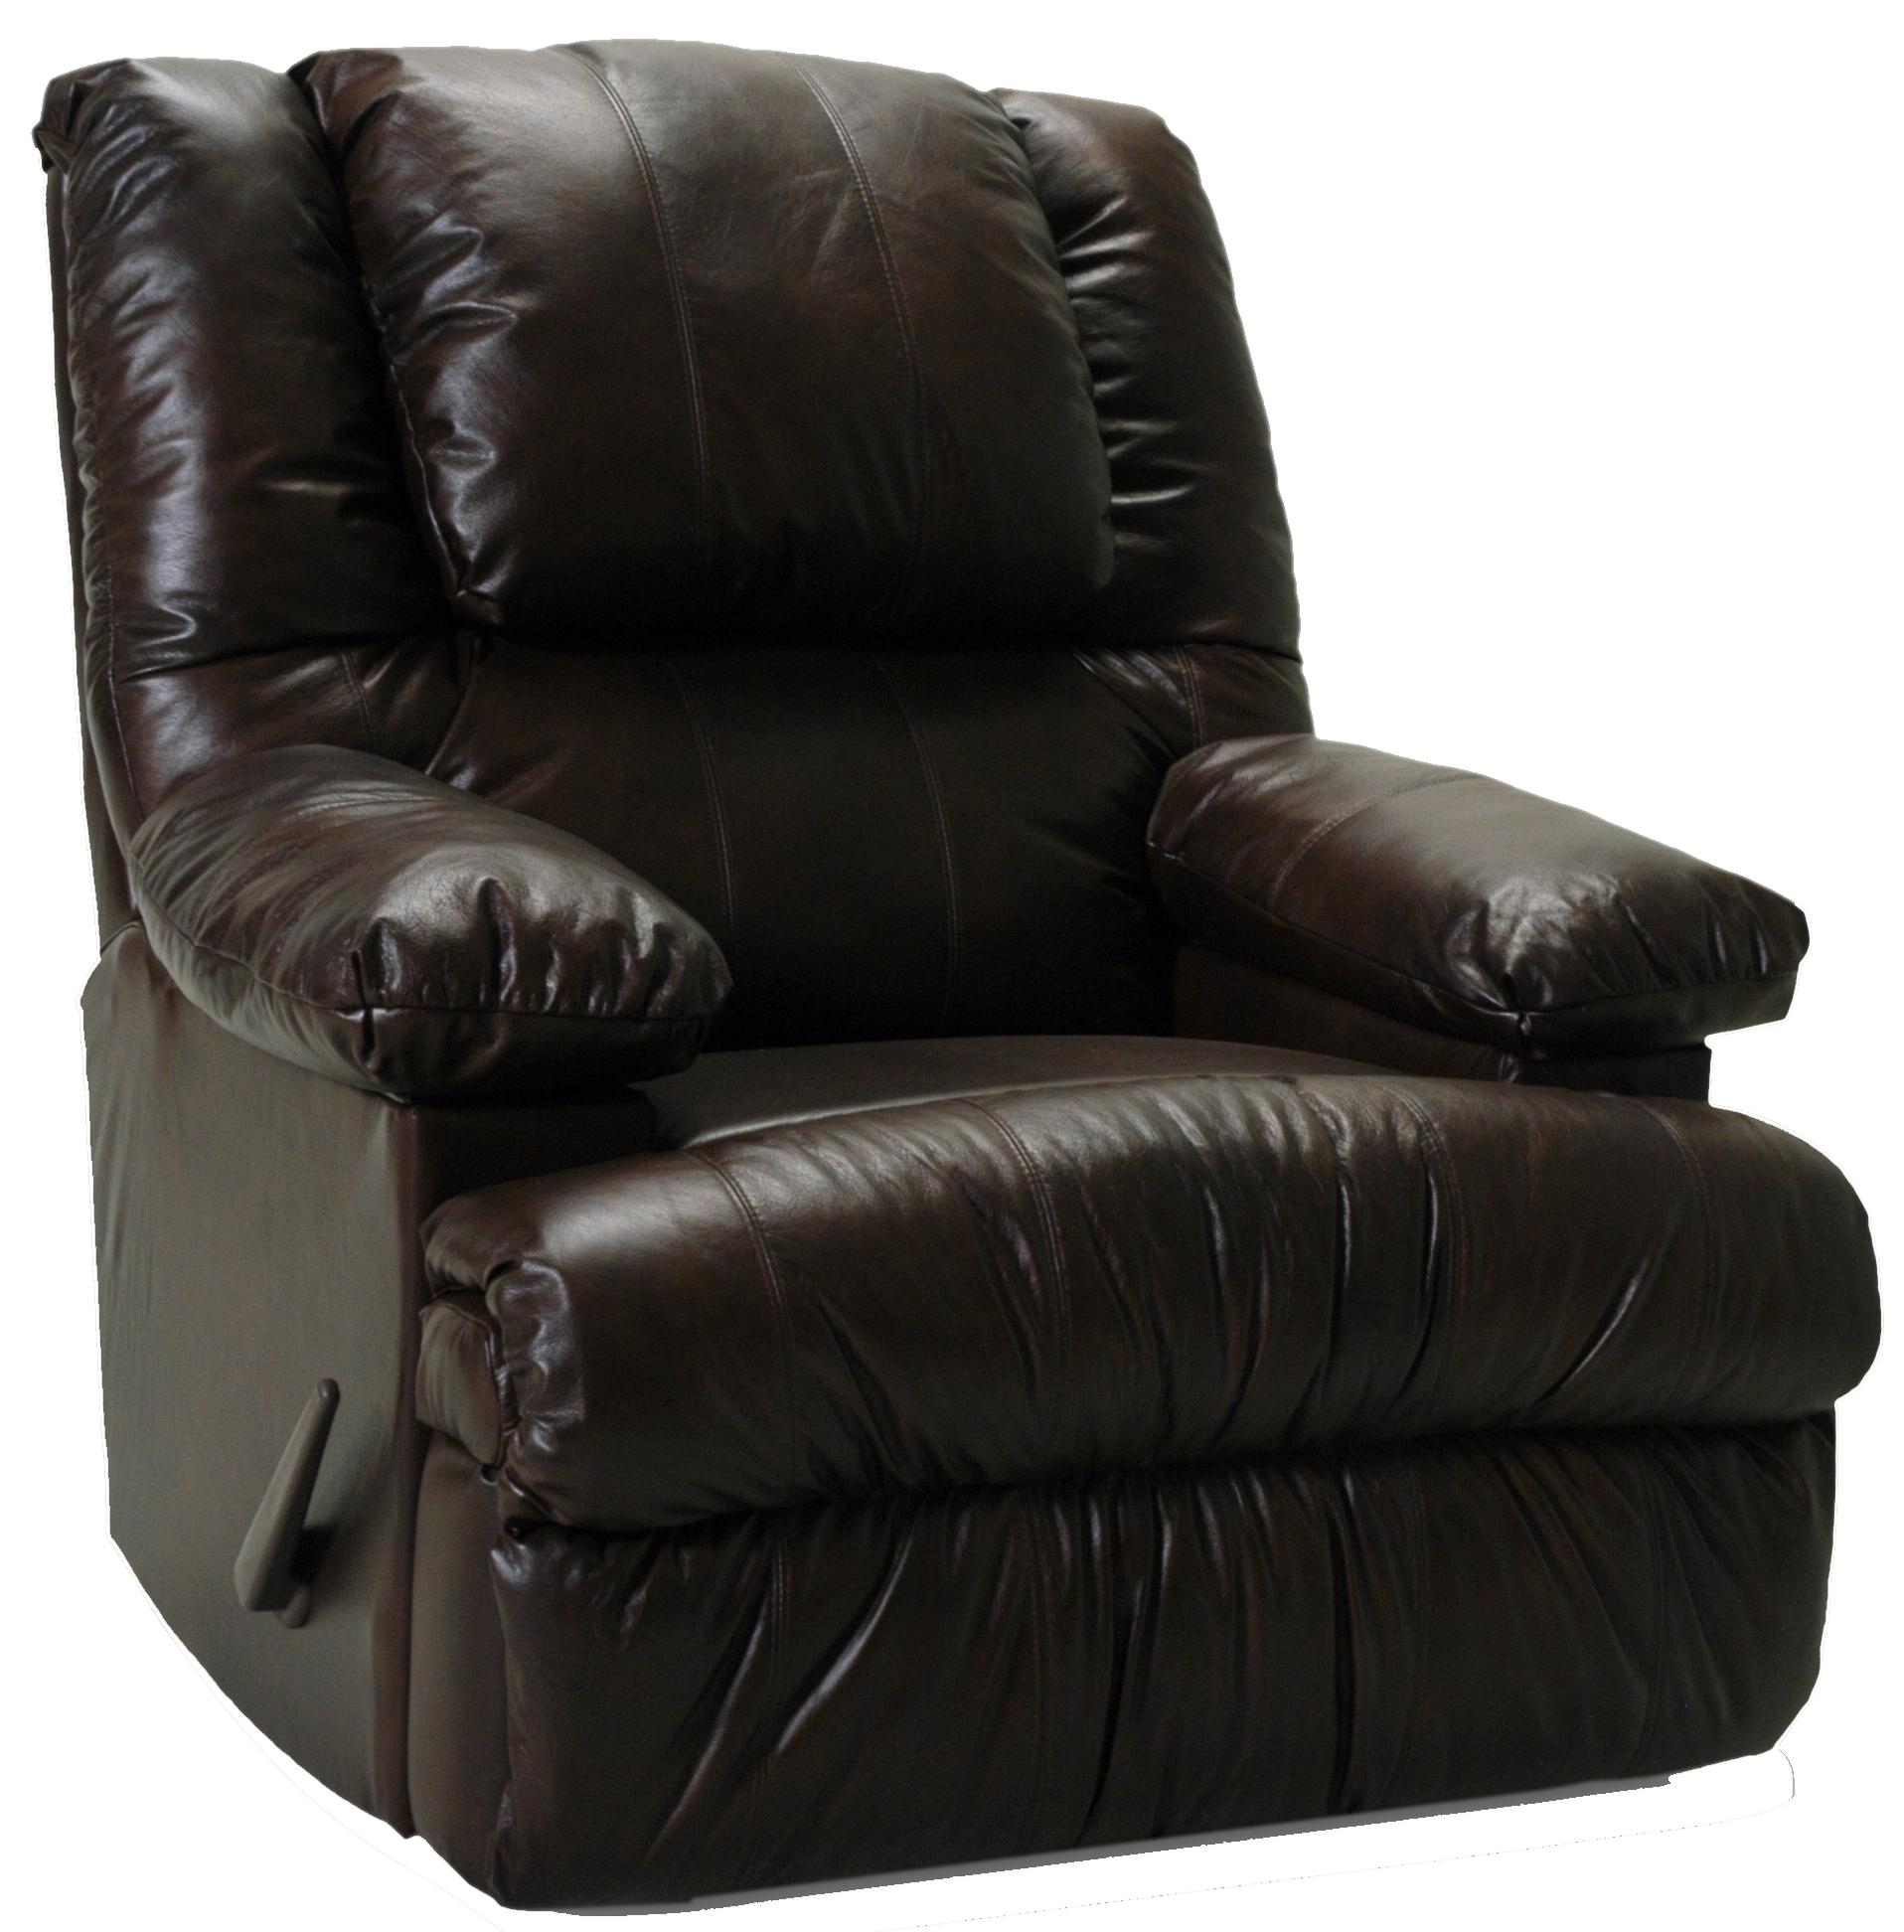 Rocker Recliner with Massage and Fridge